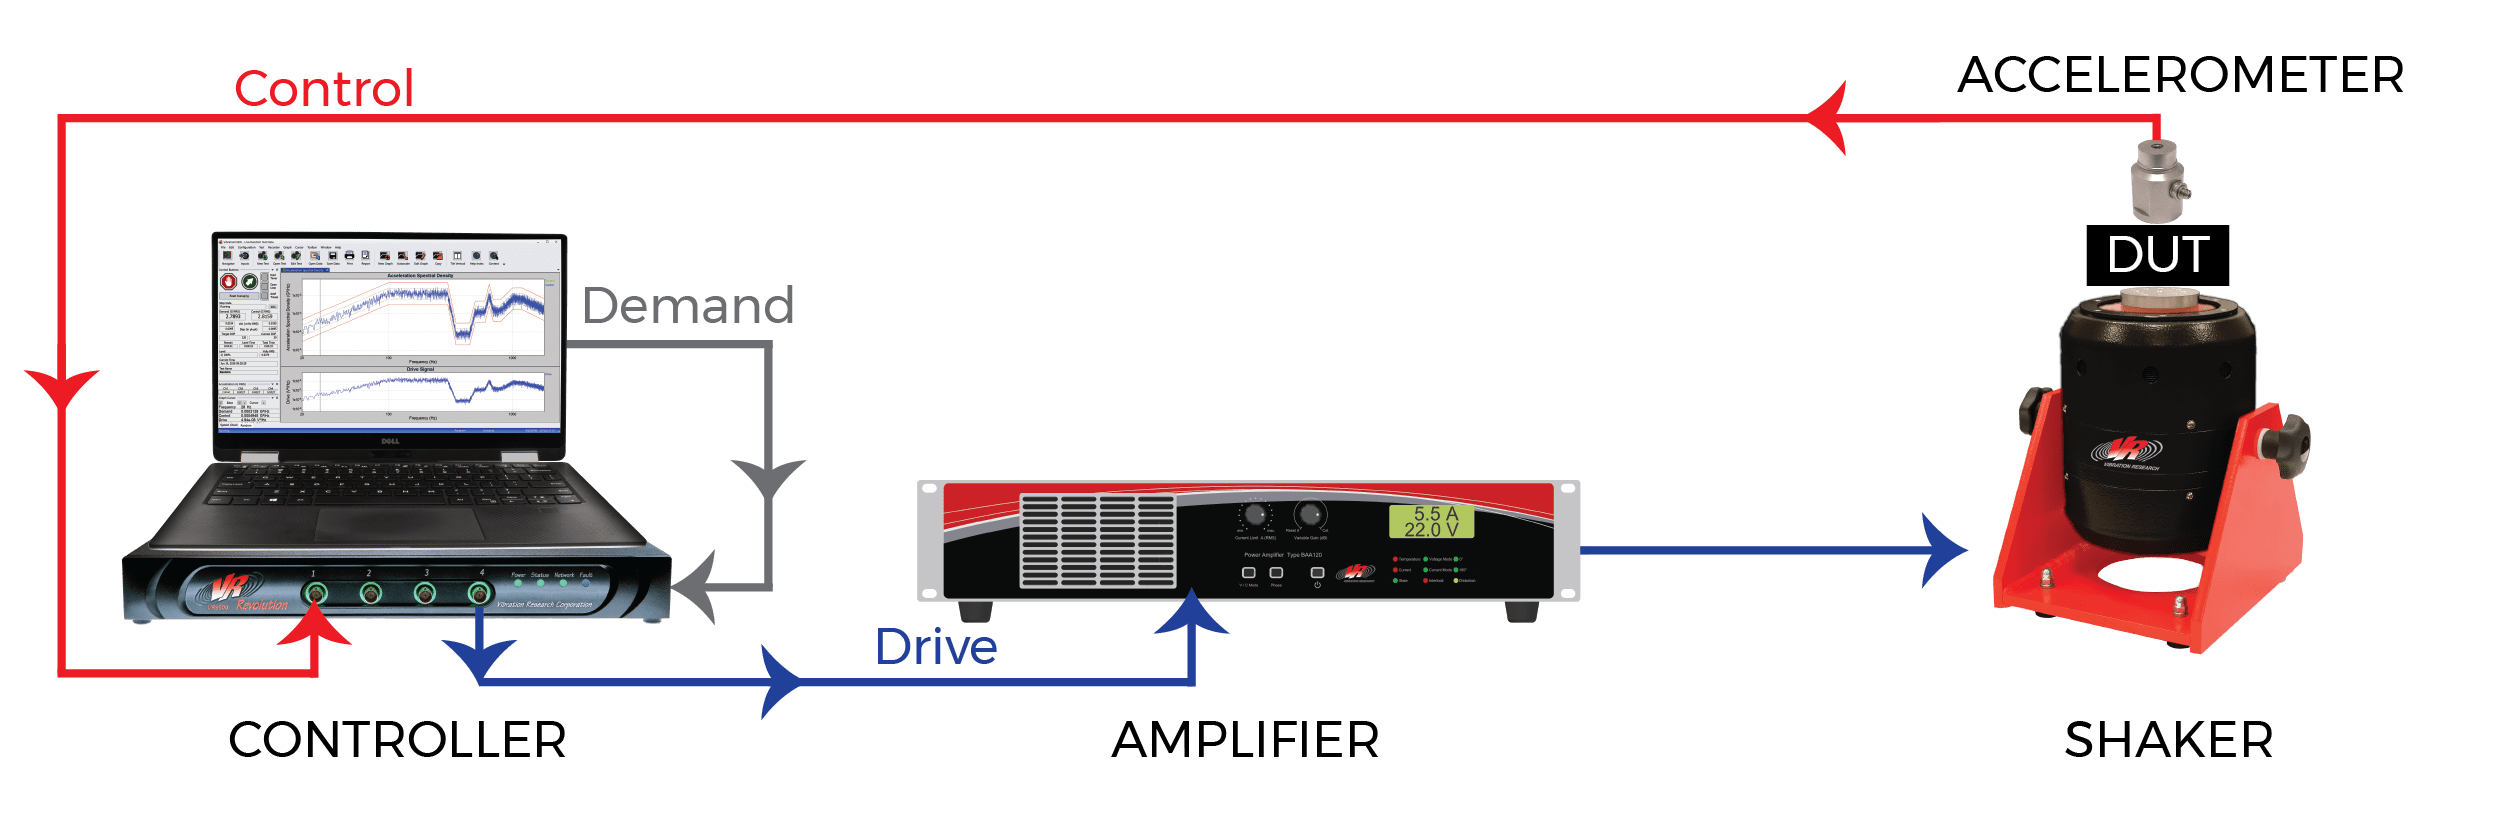 A vibration controller generates a Drive signal that causes the measured Control acceleration to closely match a prescribed Demand